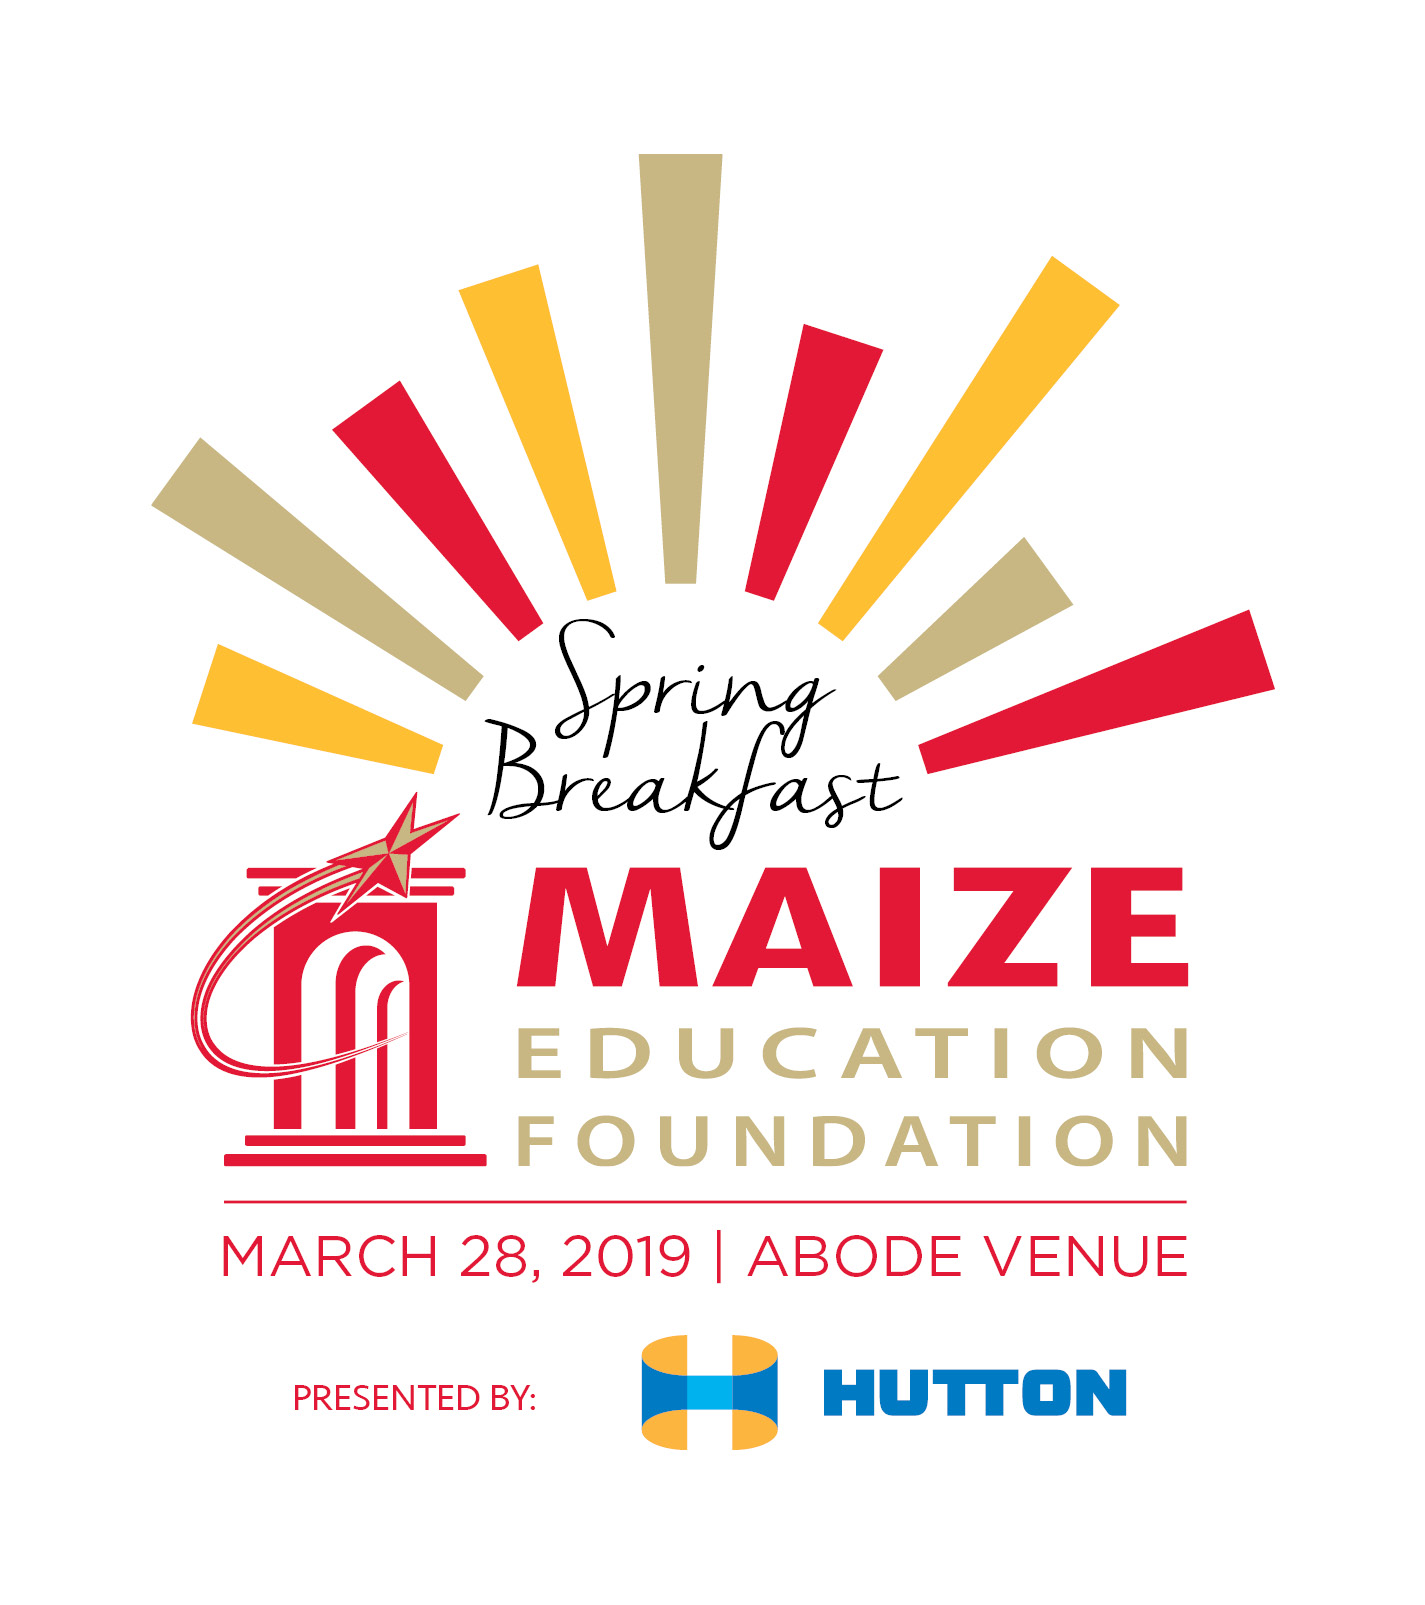 Our Inaugural Maize Education Foundation Spring Breakfast - Thanks to all of our sponsors, volunteers and guests, our inaugural Spring Breakfast raised more that $14,000 to support the educators and students of the Maize School District! We are so grateful to everyone who attended and contributed to the success of our first breakfast event - and we are already putting plans together for next year's event!By supporting our Spring Breakfast, you have invested in local public education and helped to strengthen the development of a local workforce that will enhance the Greater Wichita community for years to come!